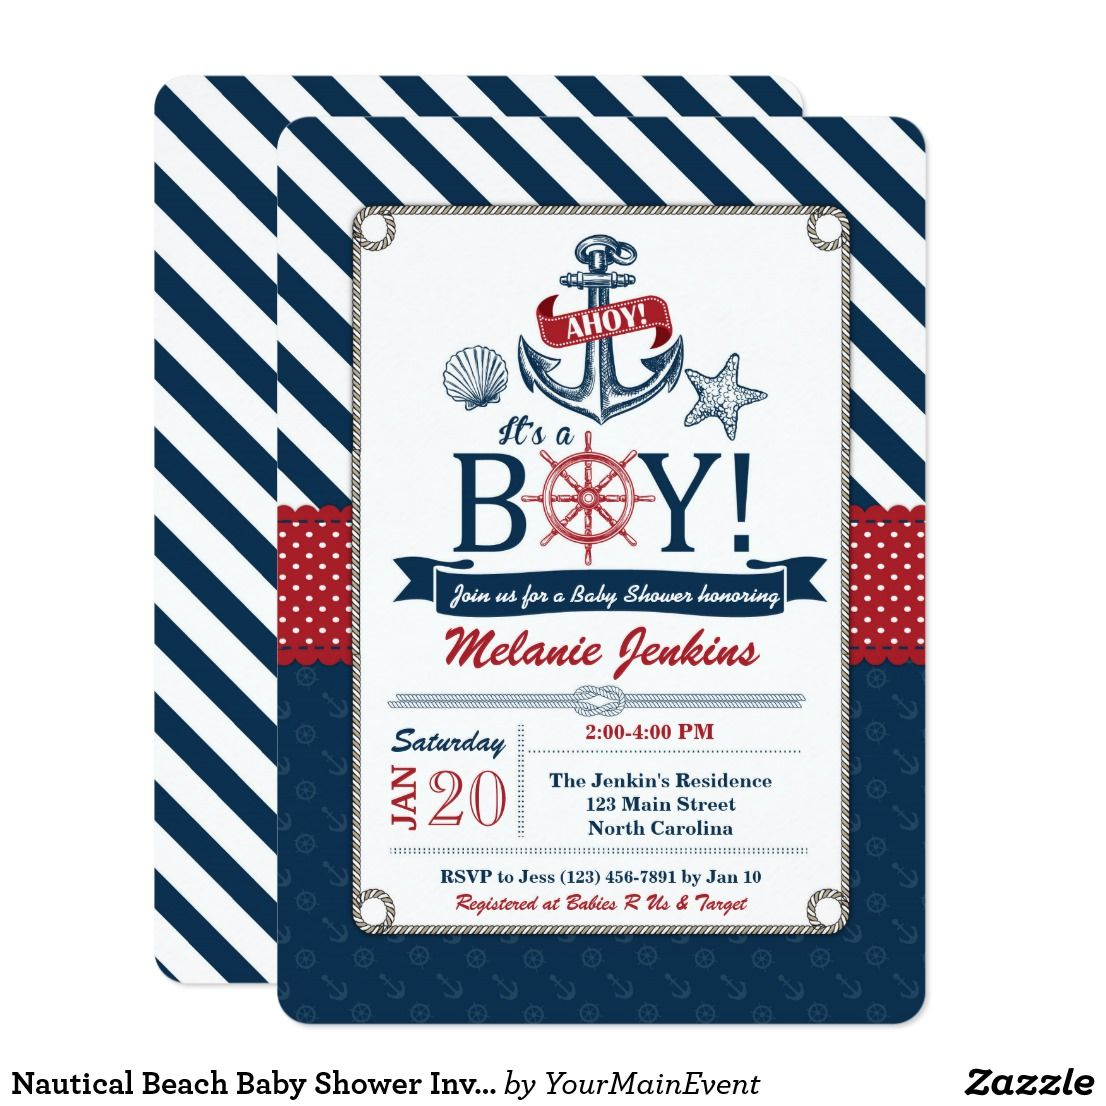 Nautical Beach Baby Shower Invitation Ahoy it\'s a boy! This navy ...